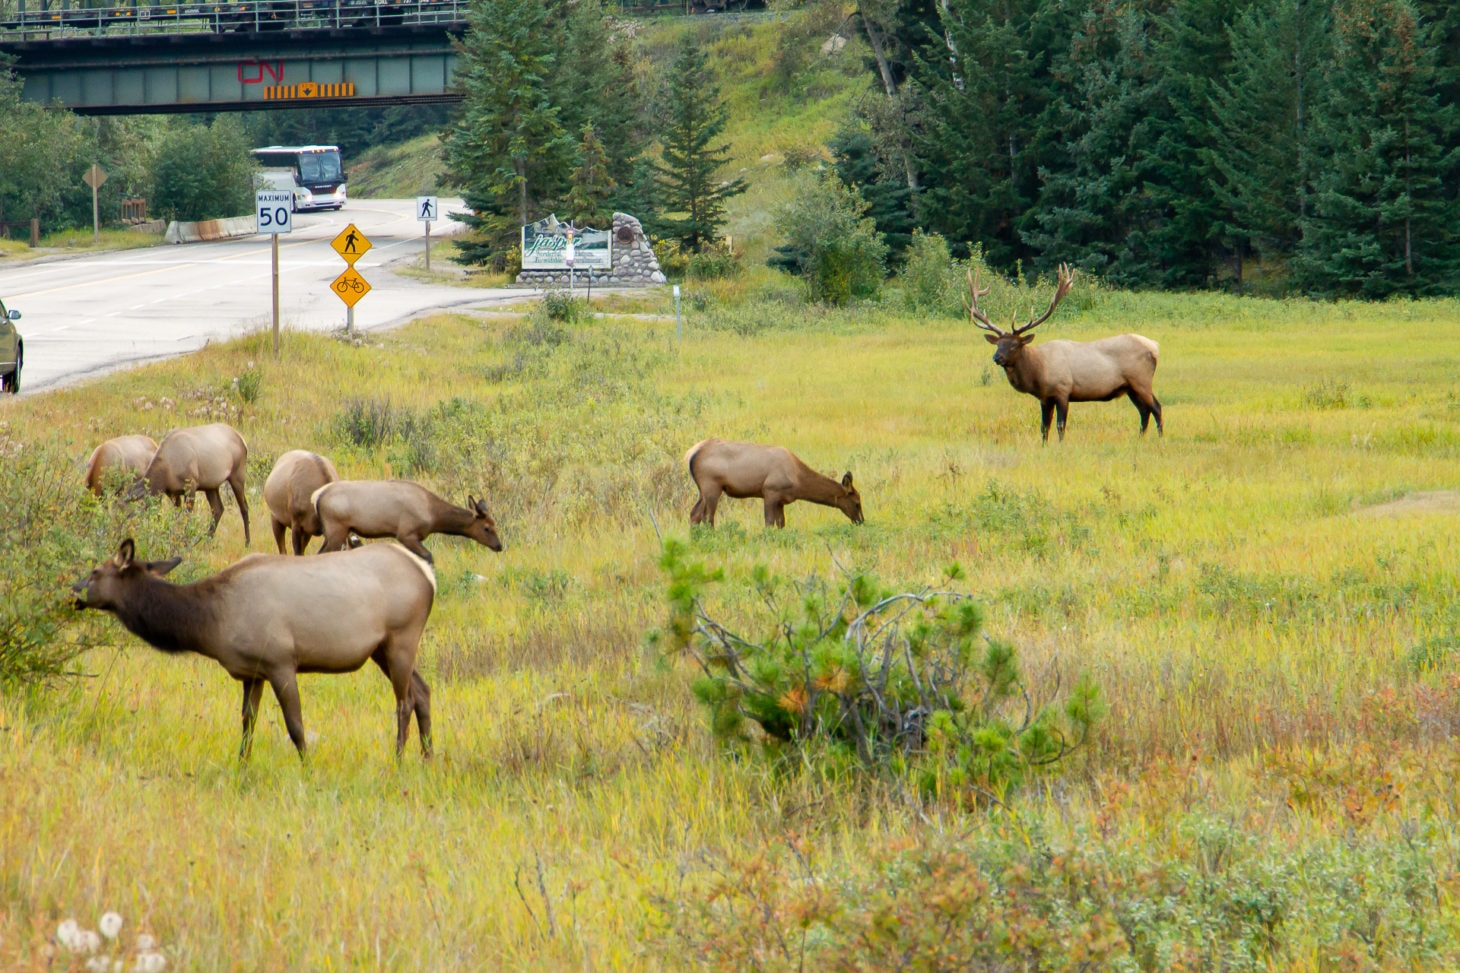 Group of elk roaming near road